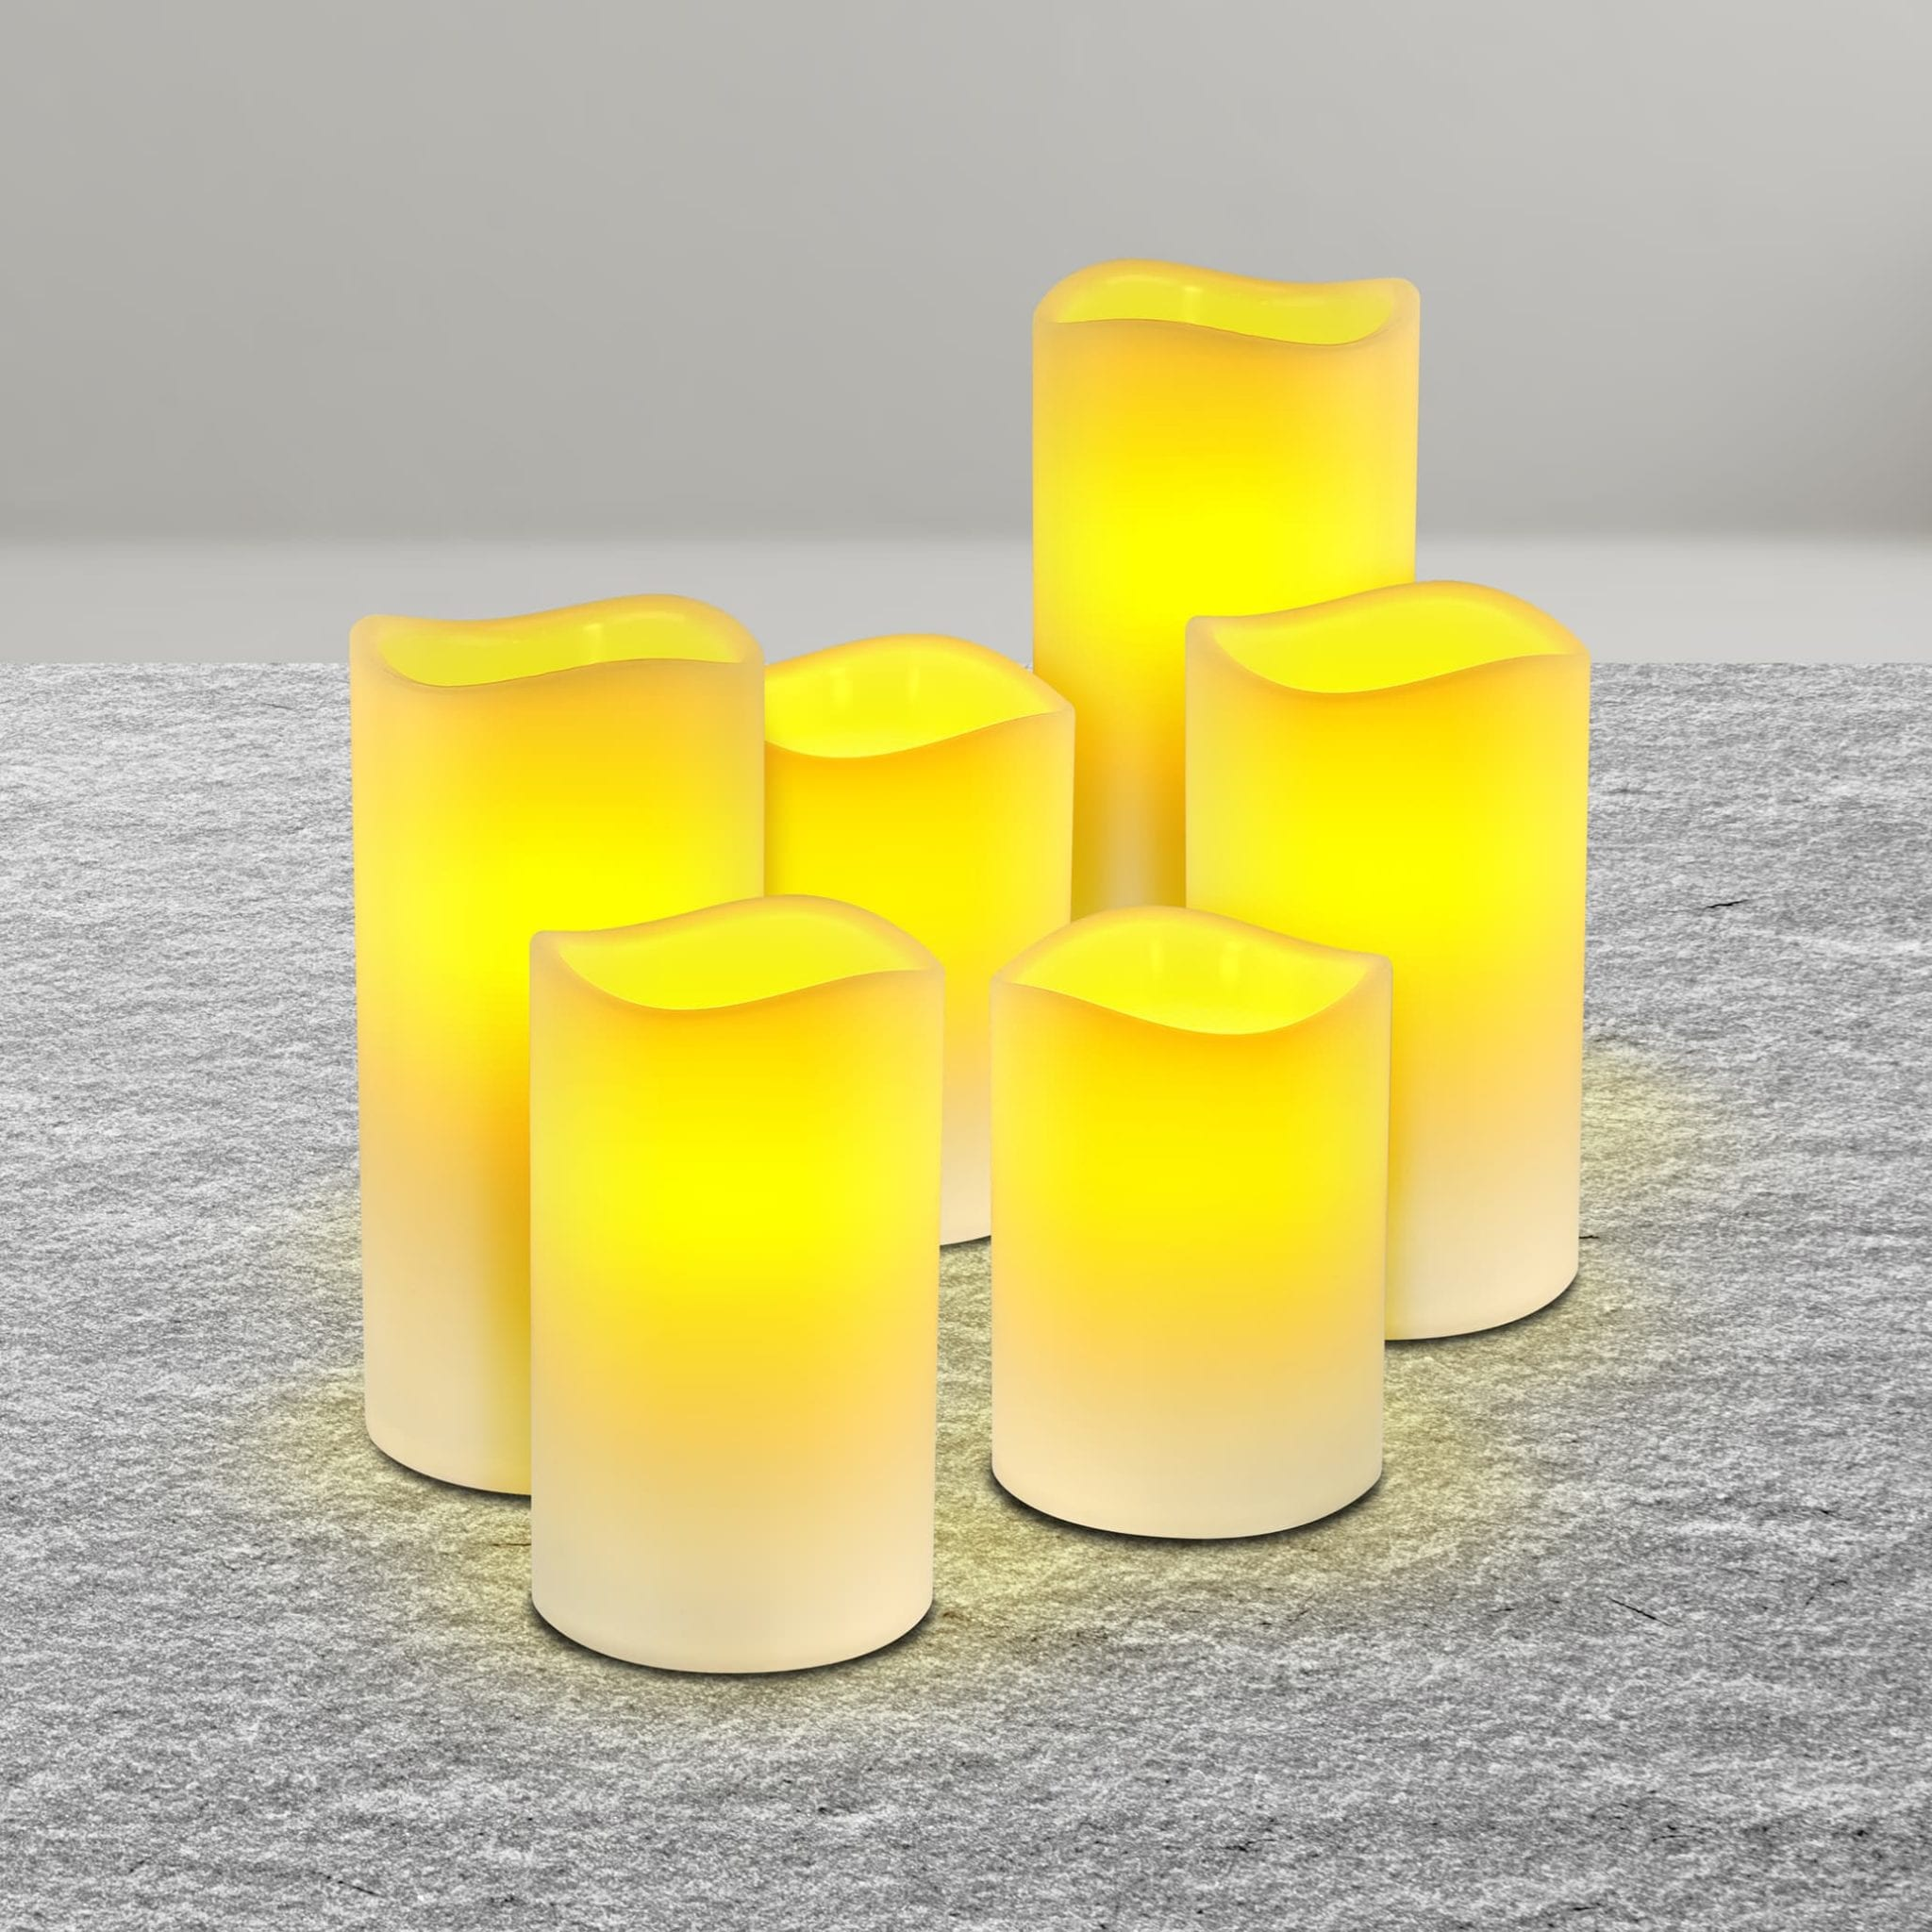 Flameless LED Wax Candles LED LIGHTS brilliant wax candles 6